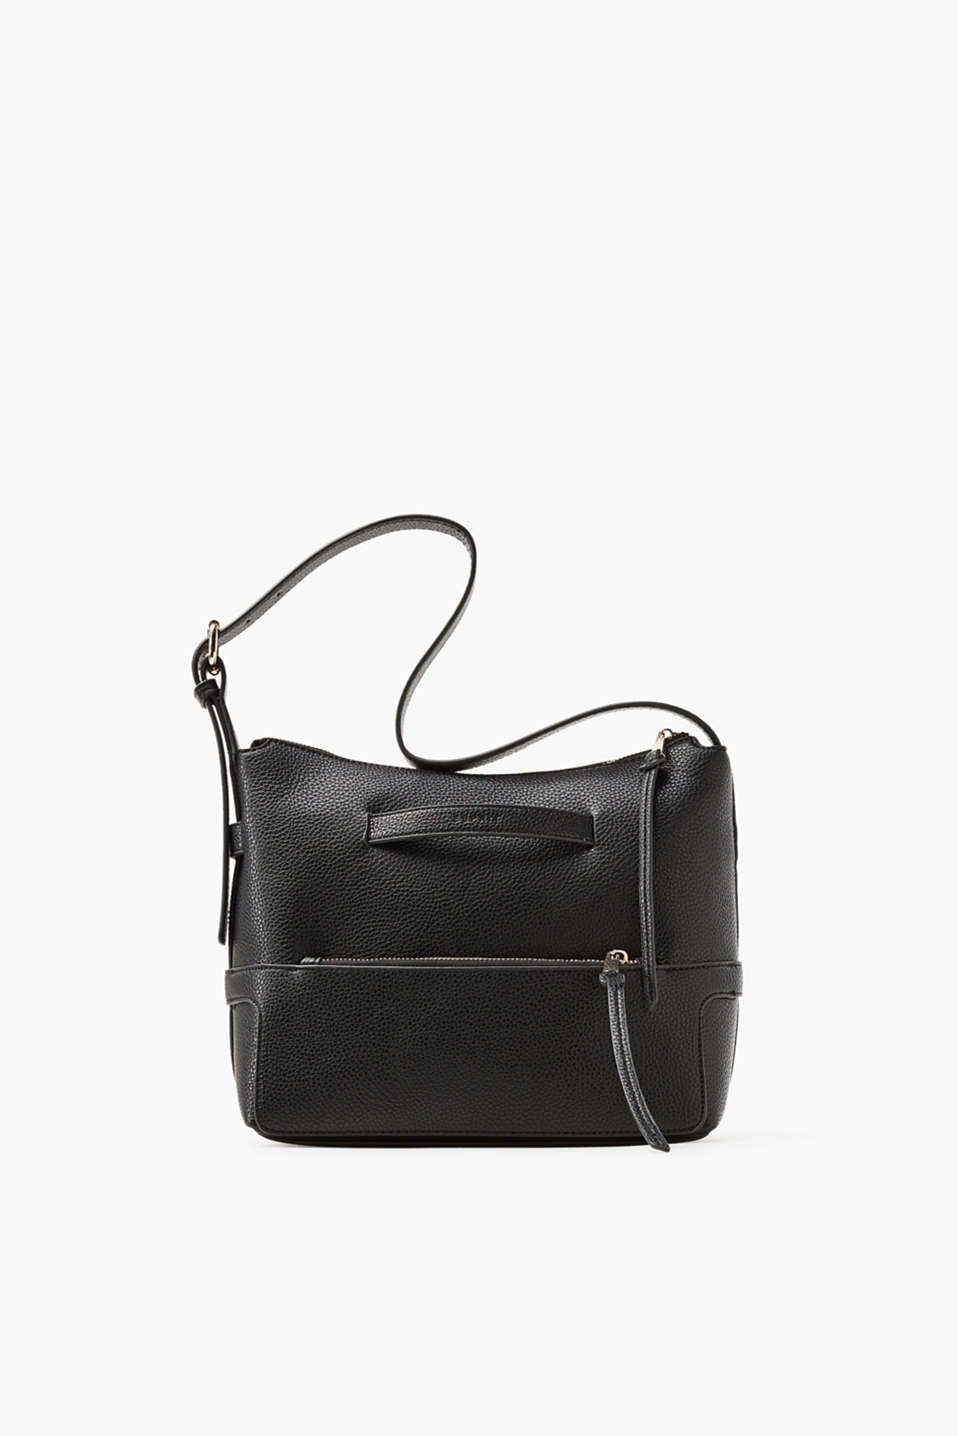 Esprit - Kleine Hobo Bag in Leder-Optik